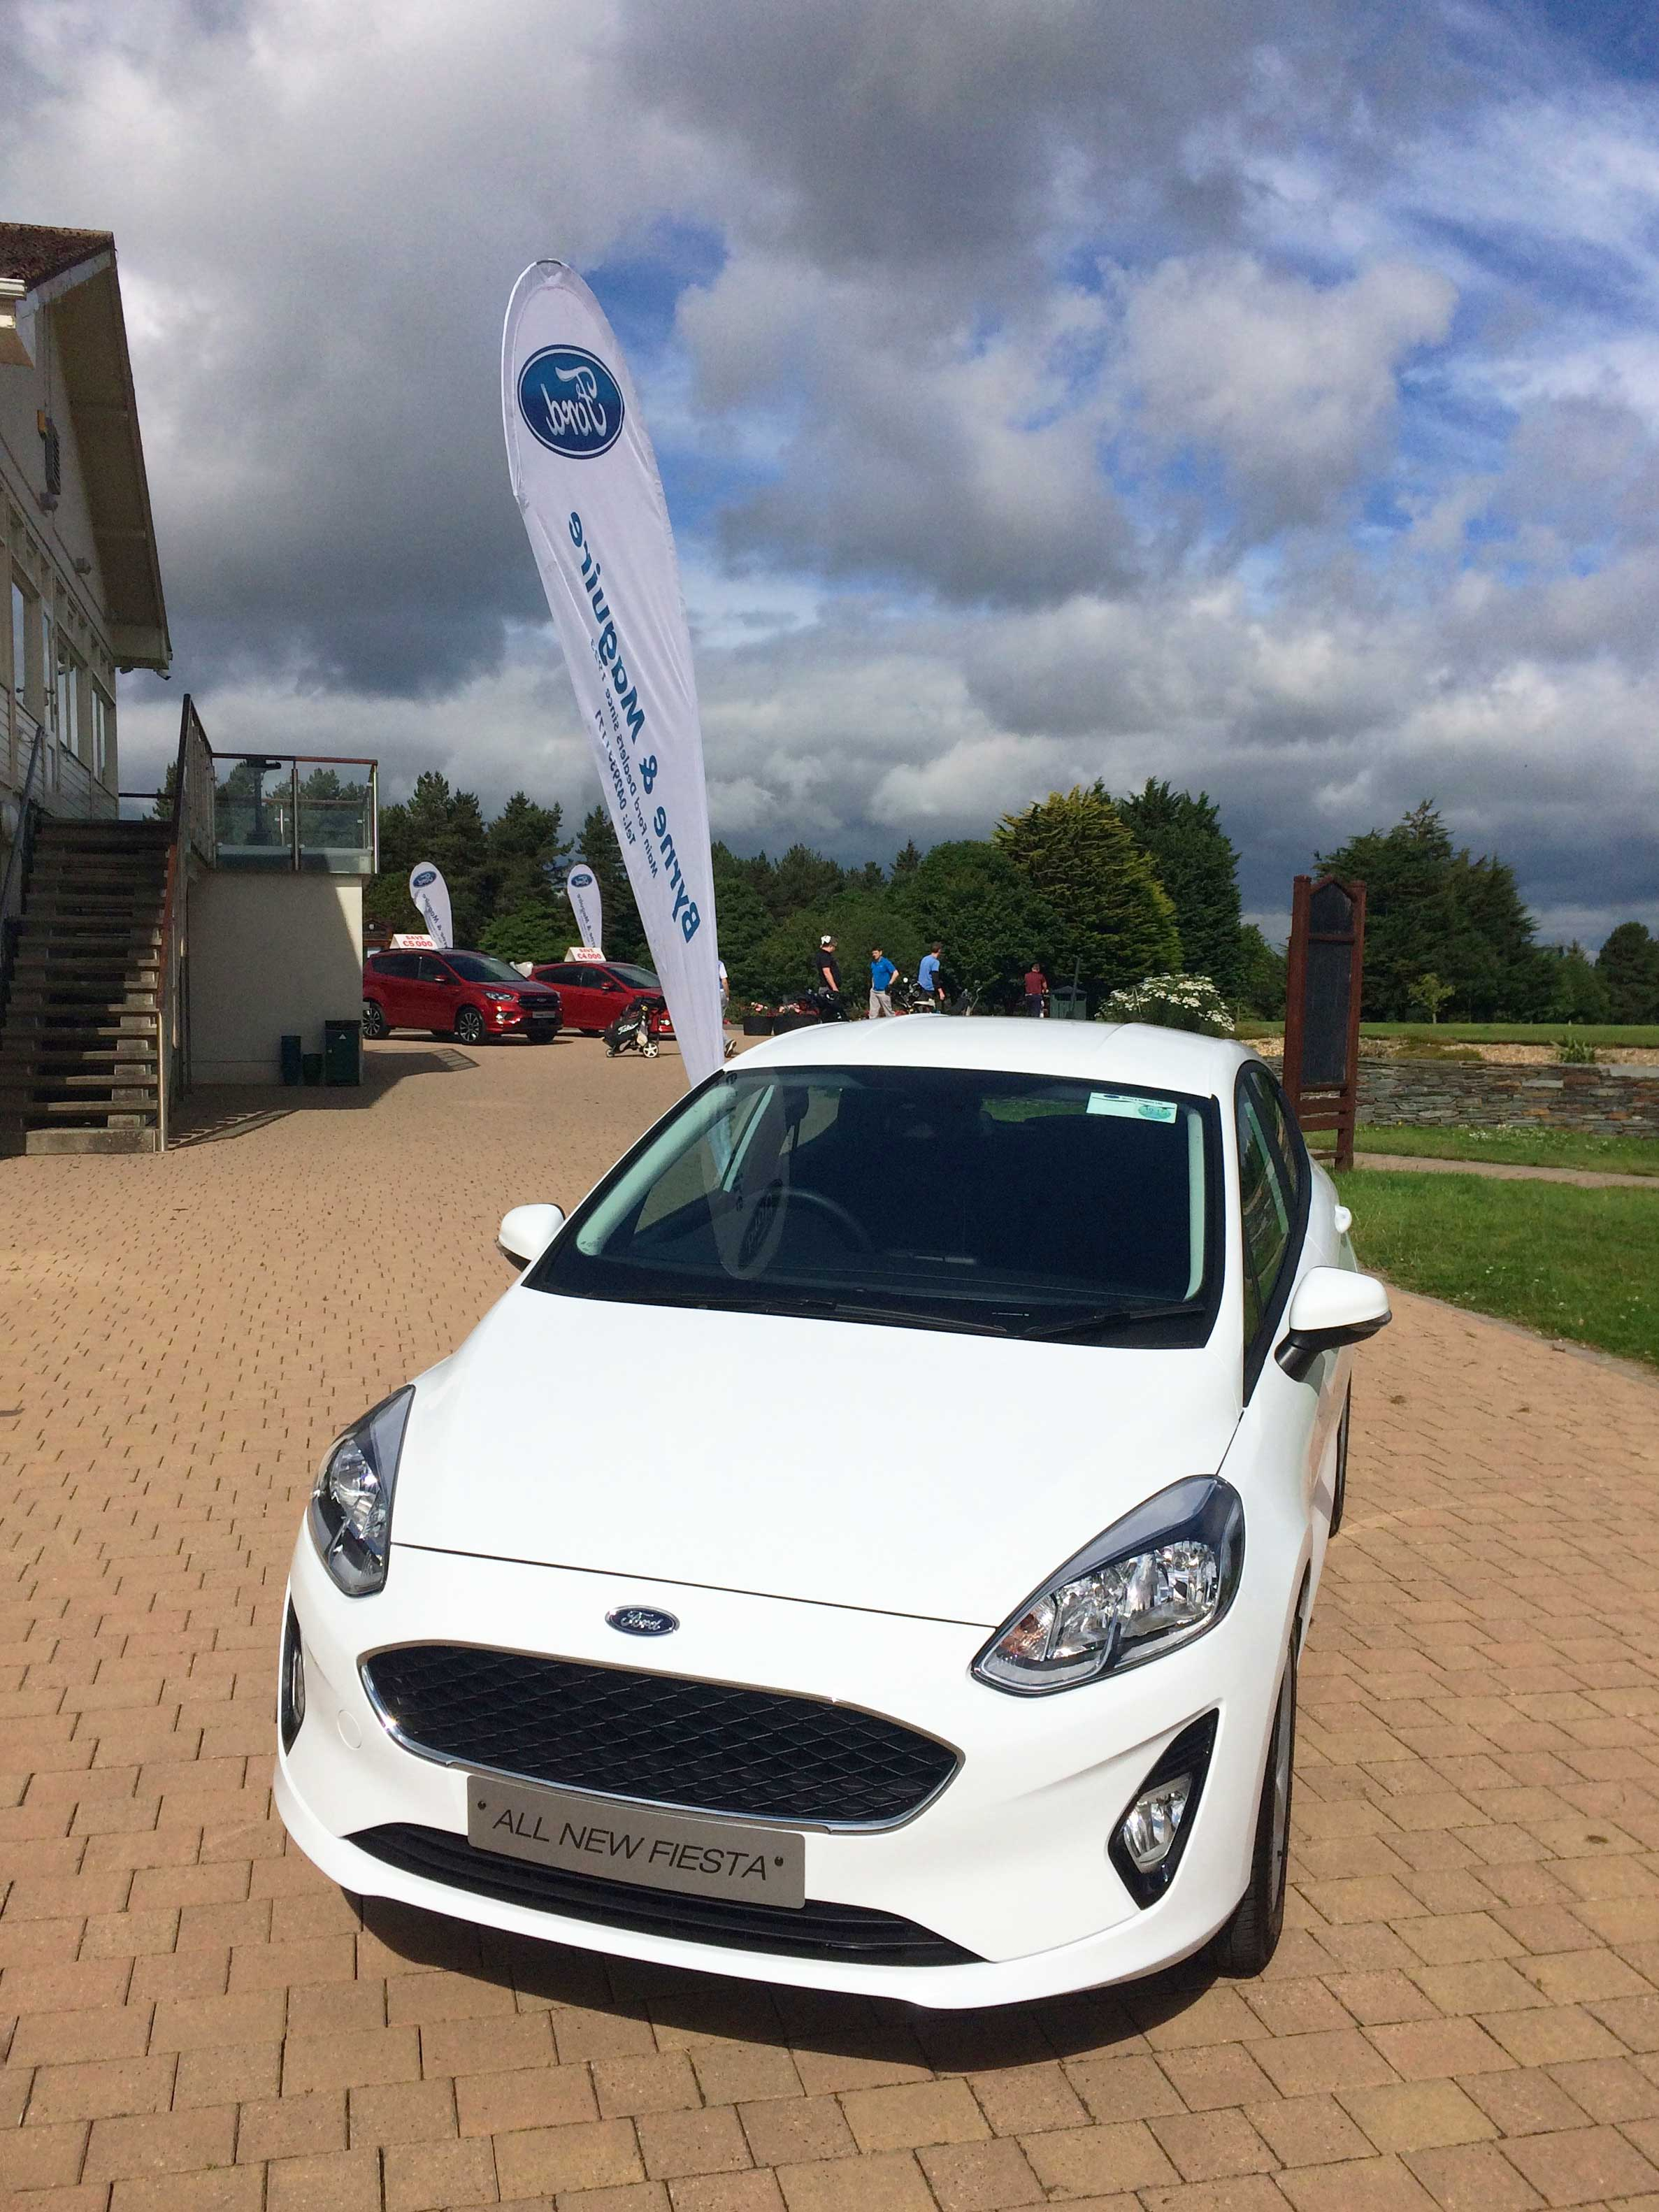 All-New Ford Fiesta on display